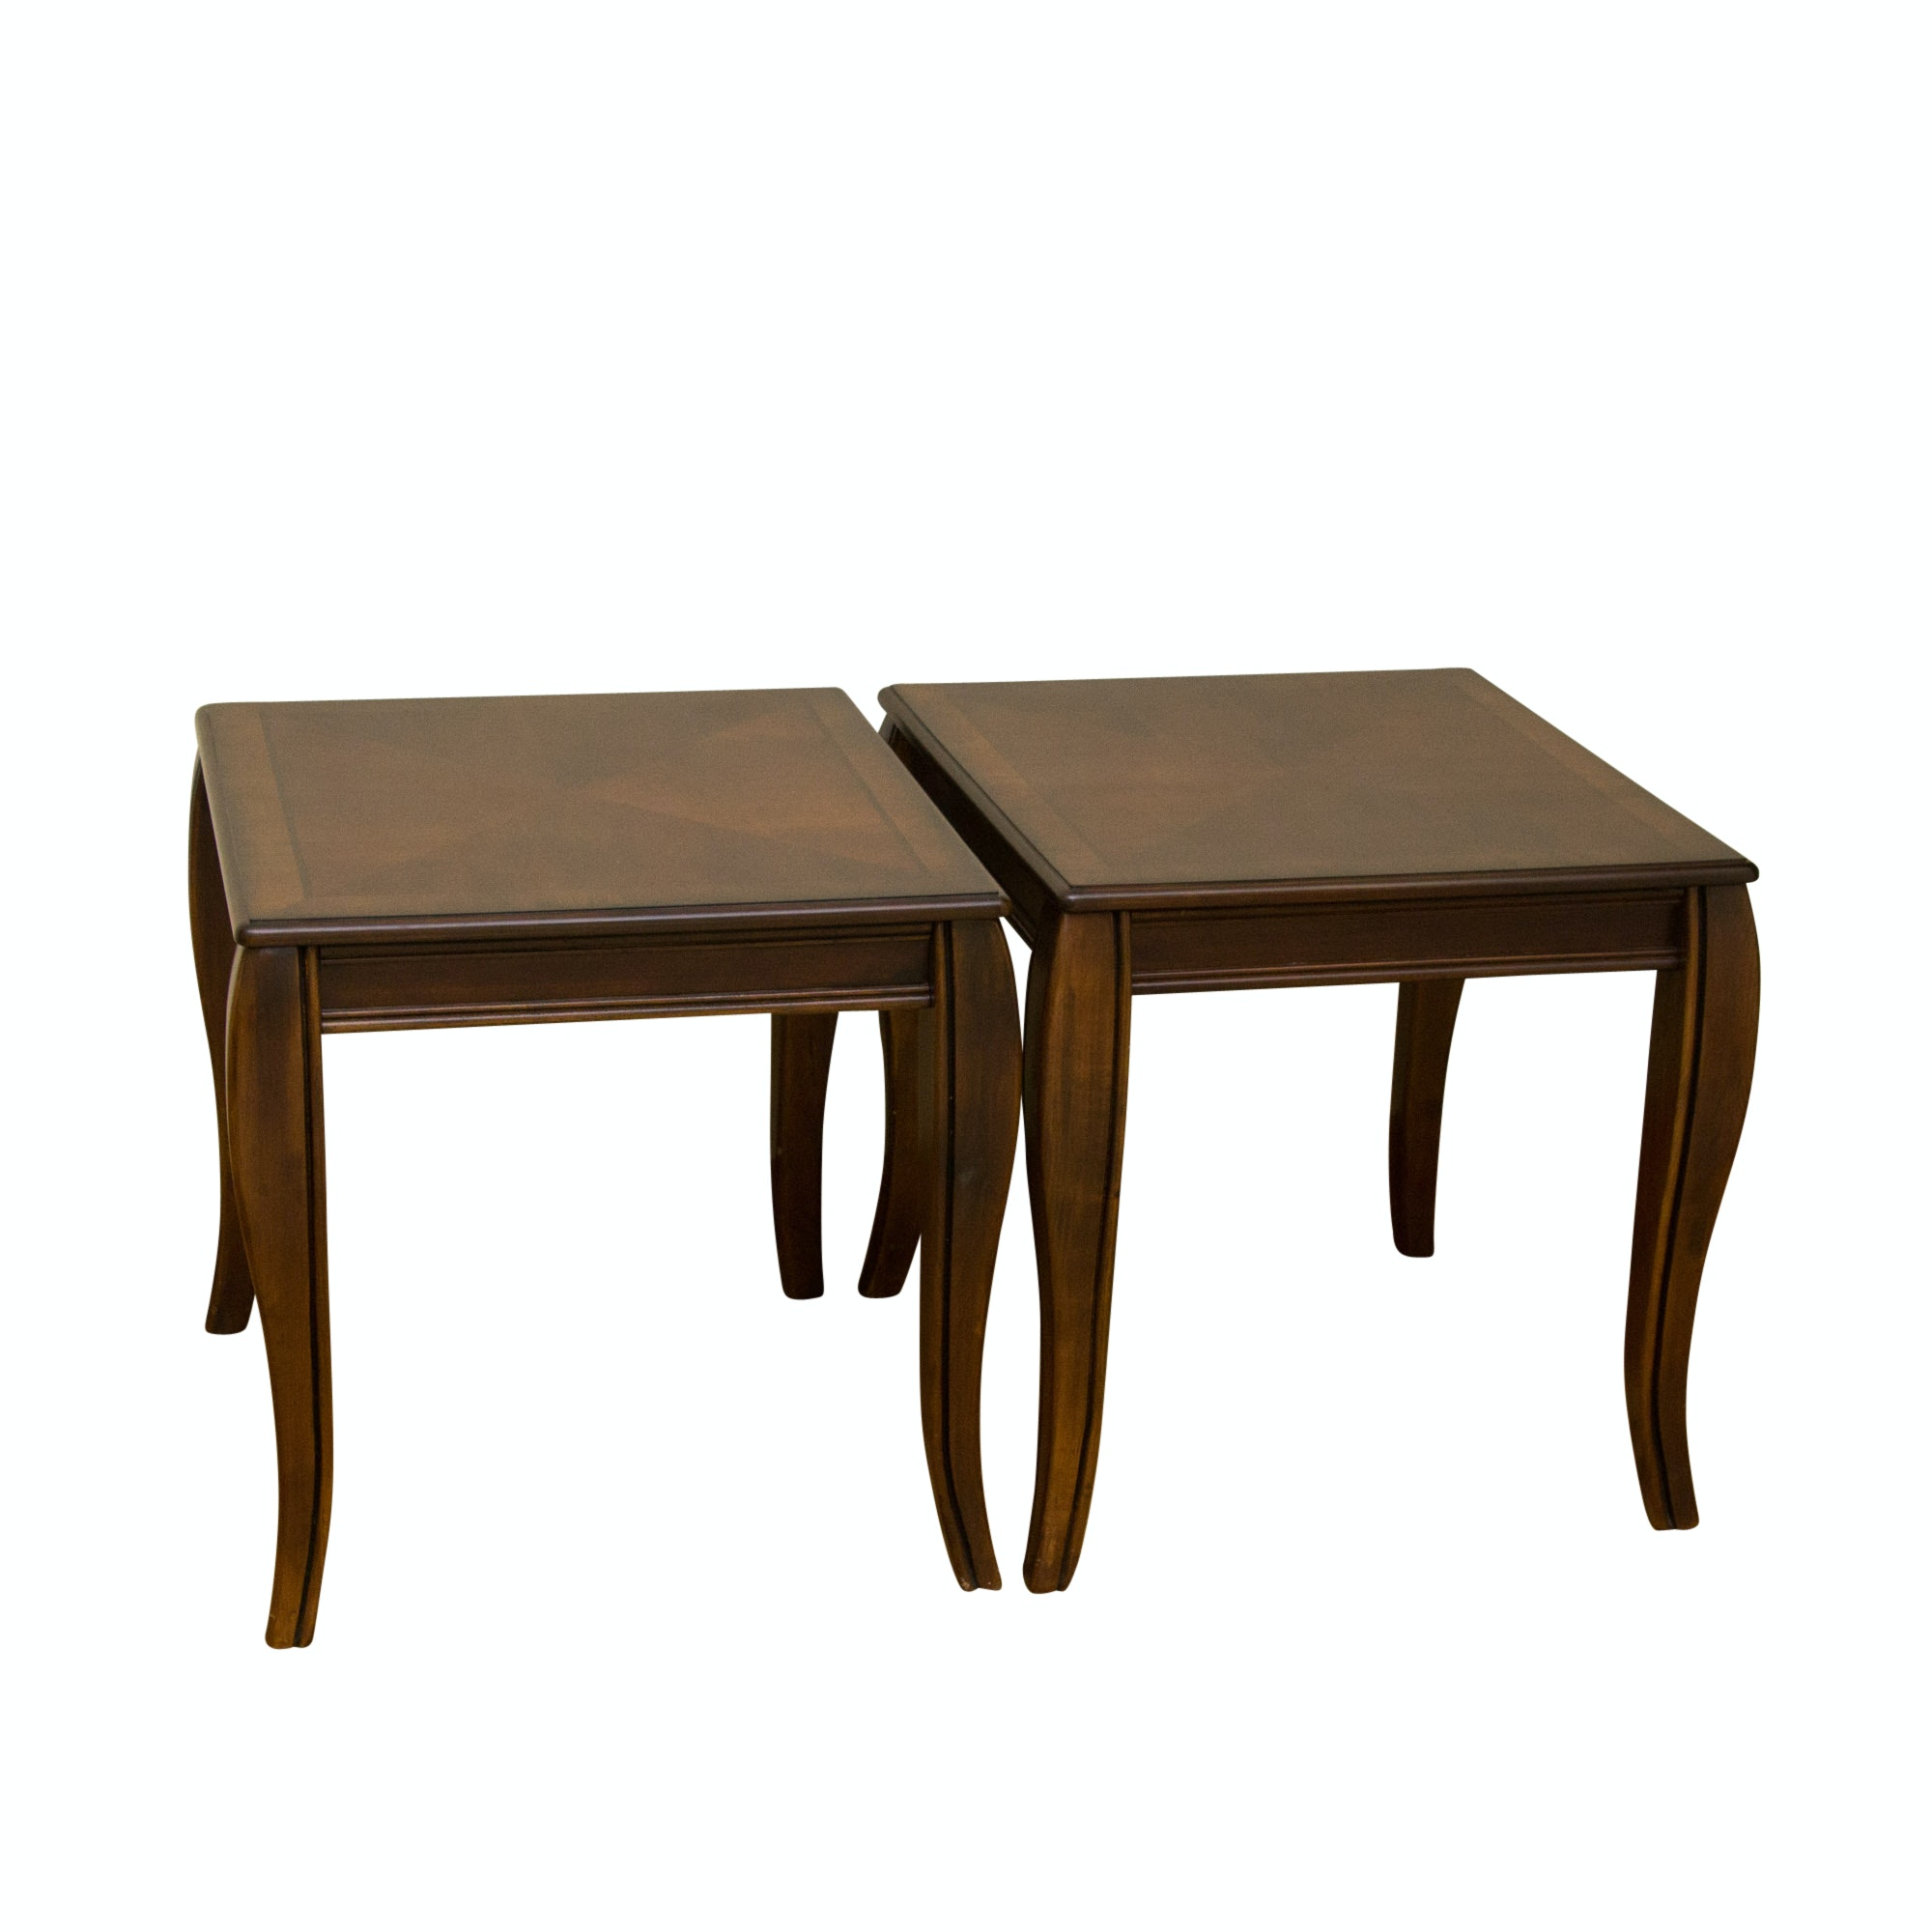 "Two ""Mattie"" Side Tables by Ashley Furniture"